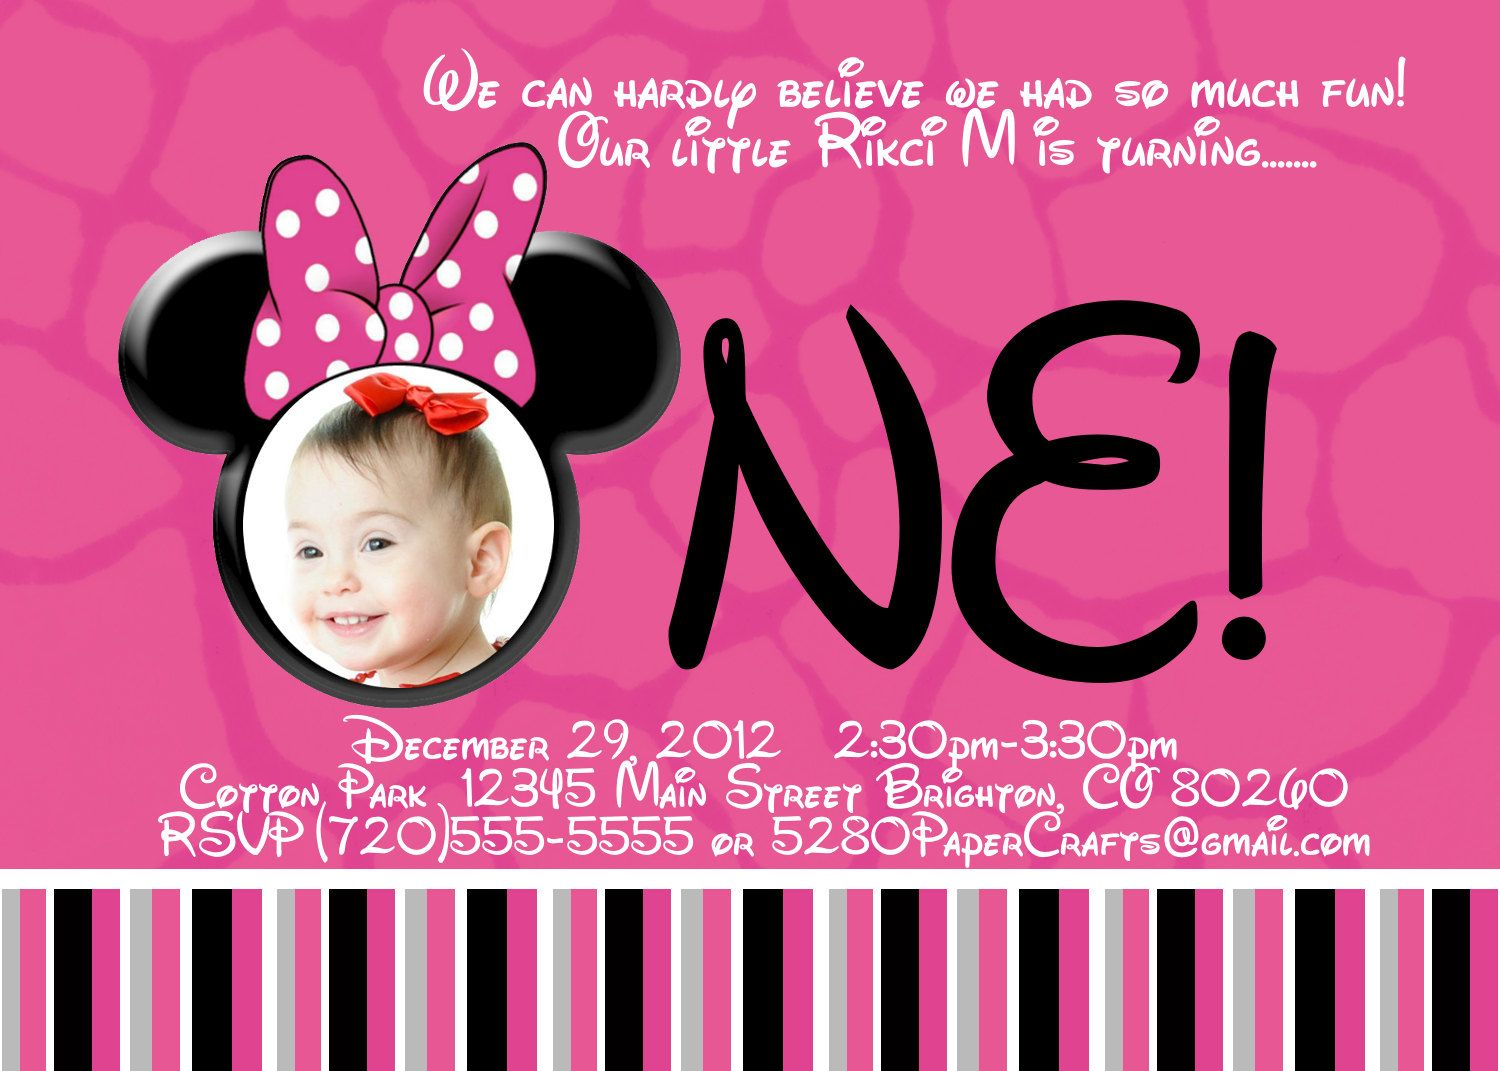 minnie mouse wording for birthday invitation ; 860c8ddc5d72c962a6947387c3e1eae6